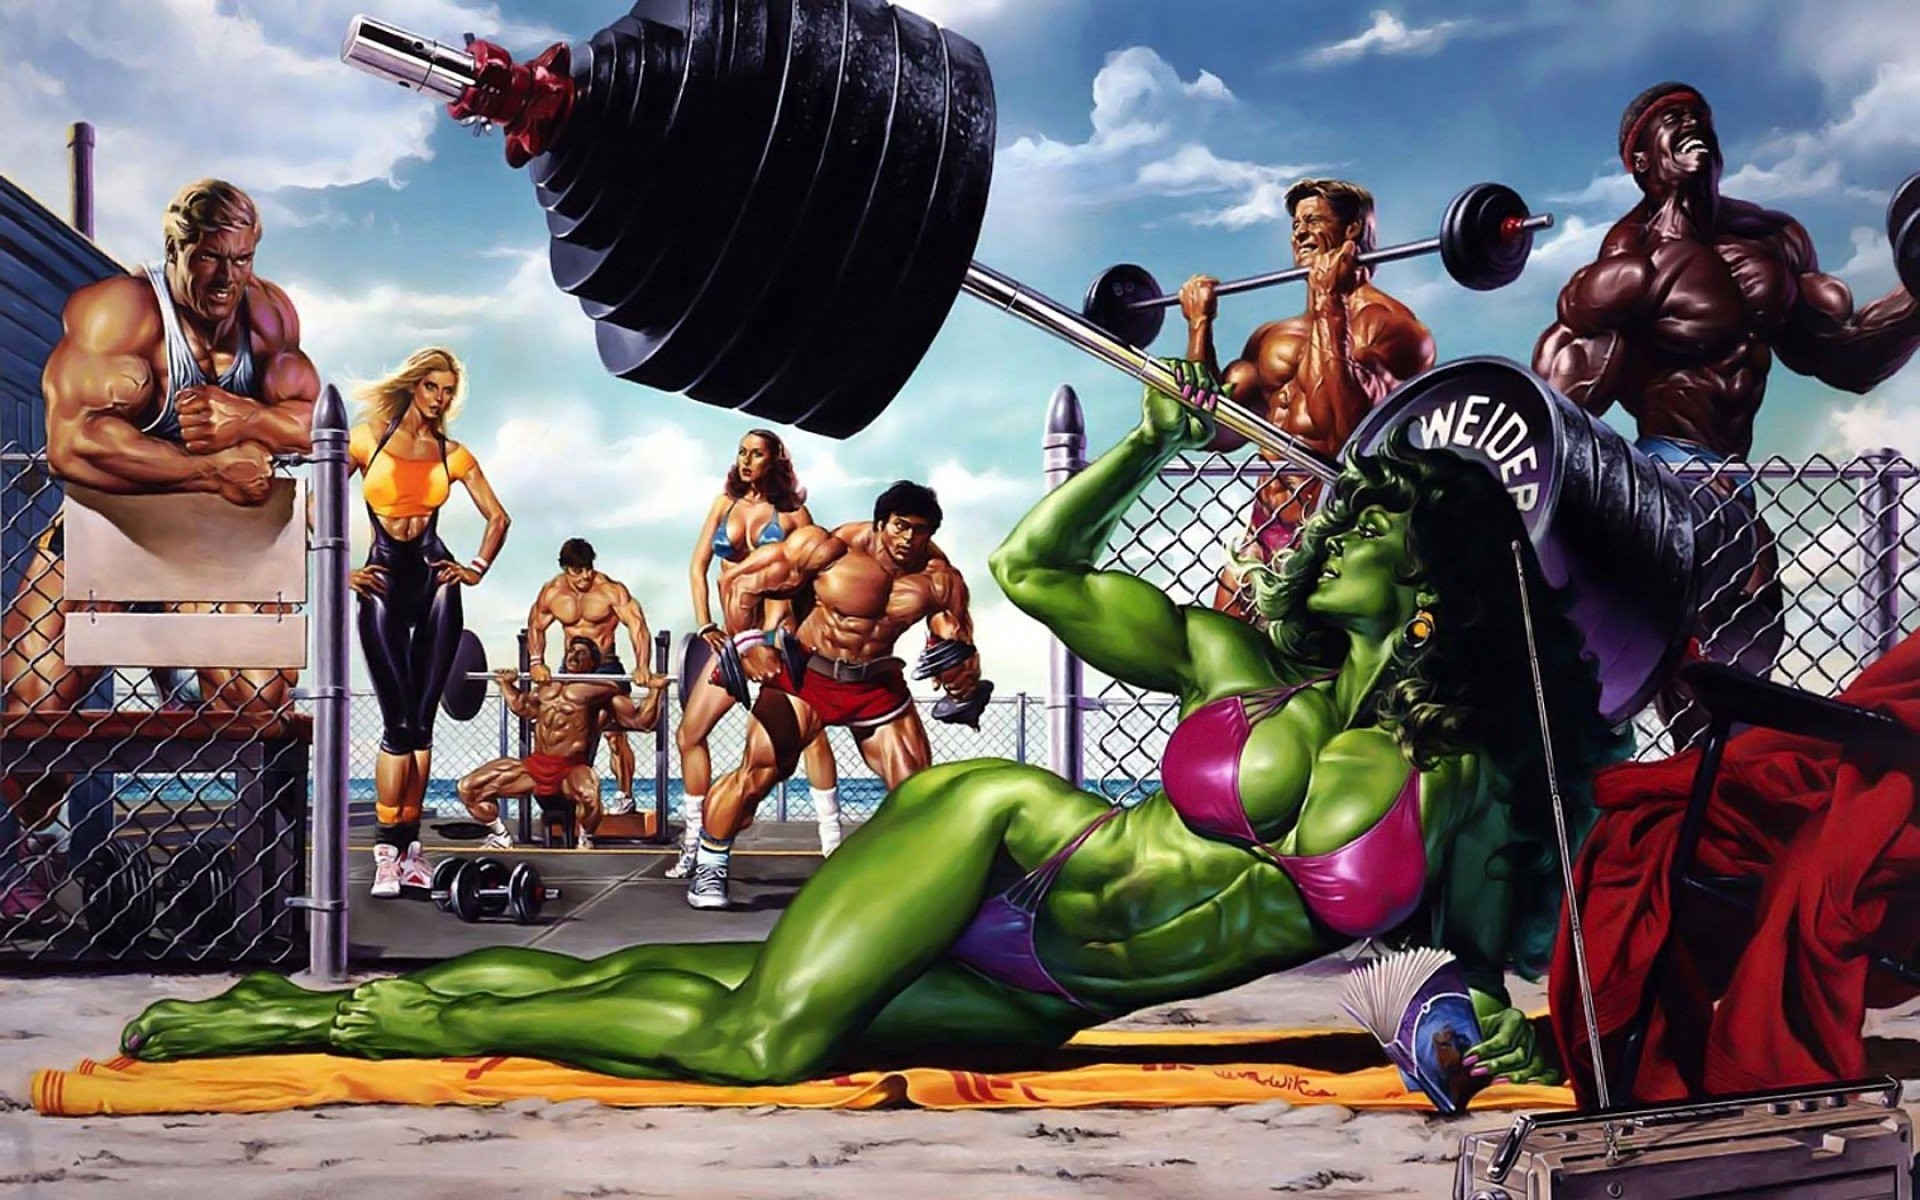 1920x1200 She-Hulk images She-Hulk - Bikini Weight Lifting HD wallpaper and  background photos